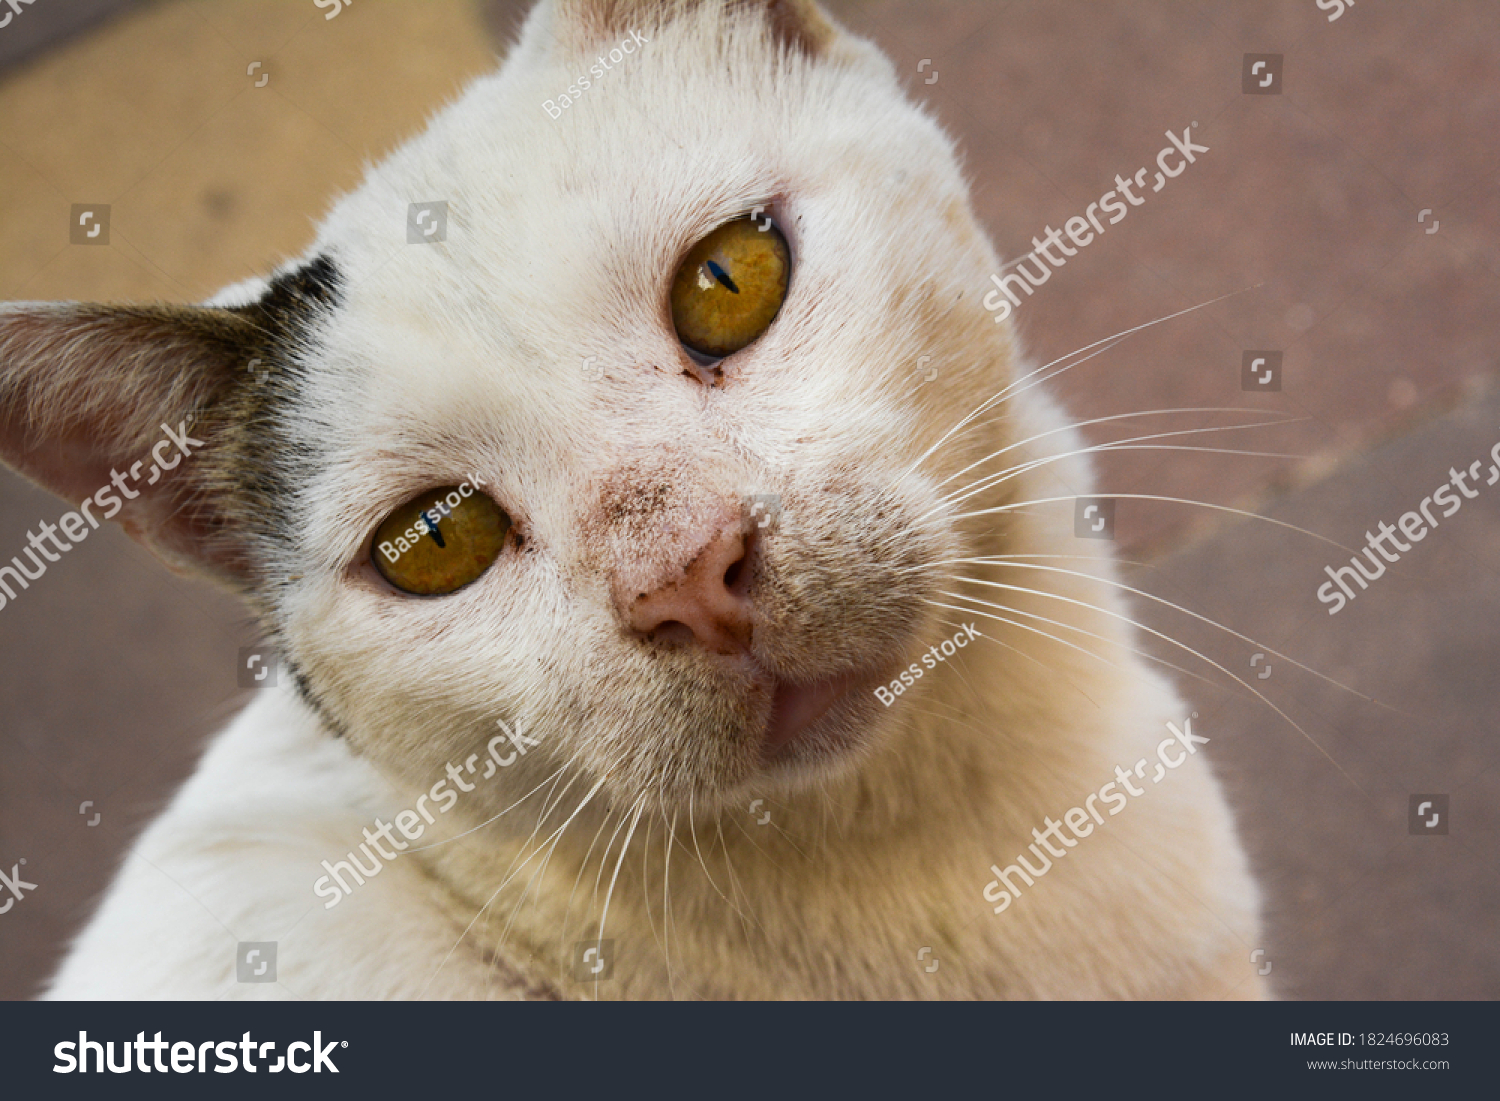 stock-photo-portrait-of-old-feral-cat-lo